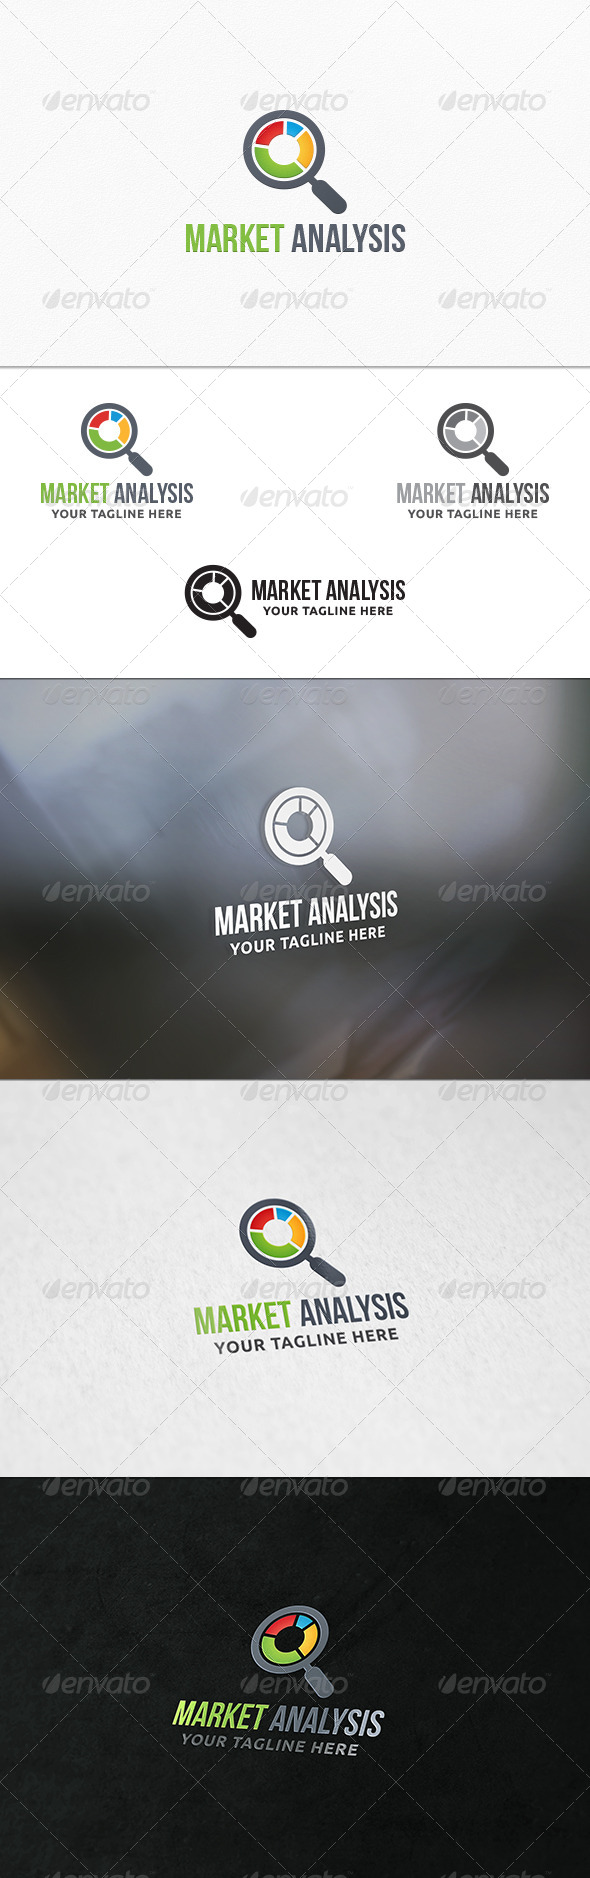 GraphicRiver Market Analysis Logo Template 7724464